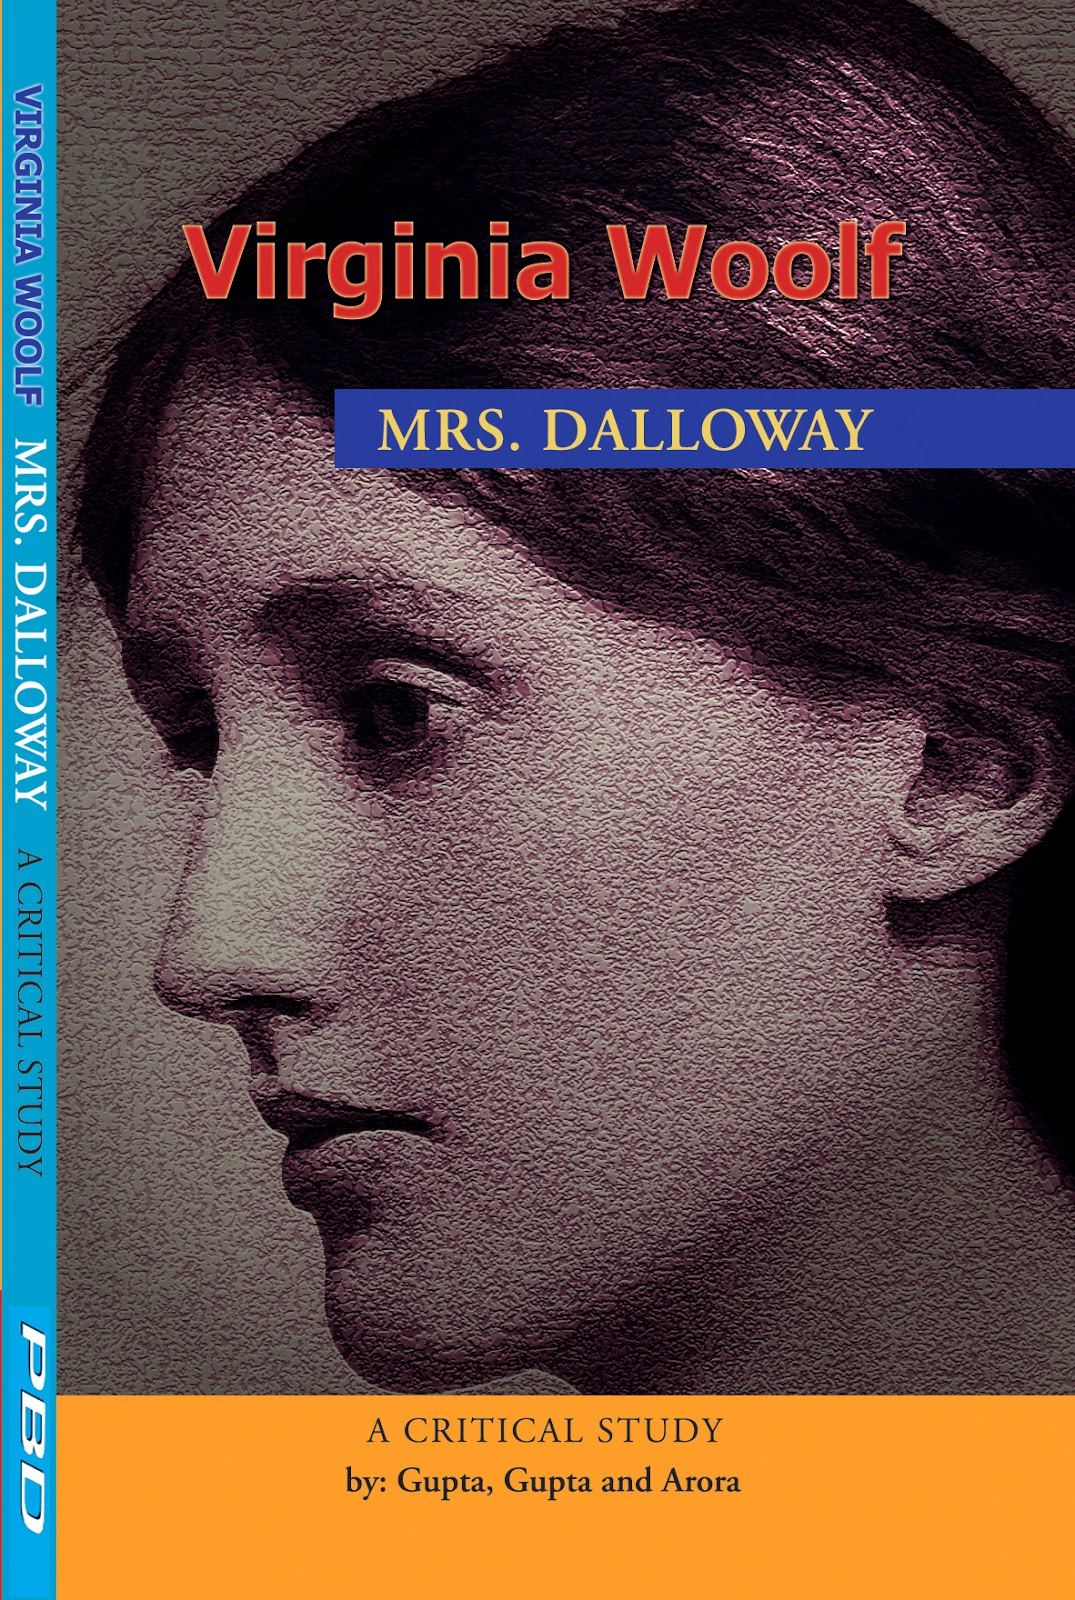 "mrs dalloway criticise social systems In mrs dalloway, her aims were significant and large, well beyond the superficial concerns of the drawing room she aspired to ""give life & death, sanity & insanity i want to criticise the."